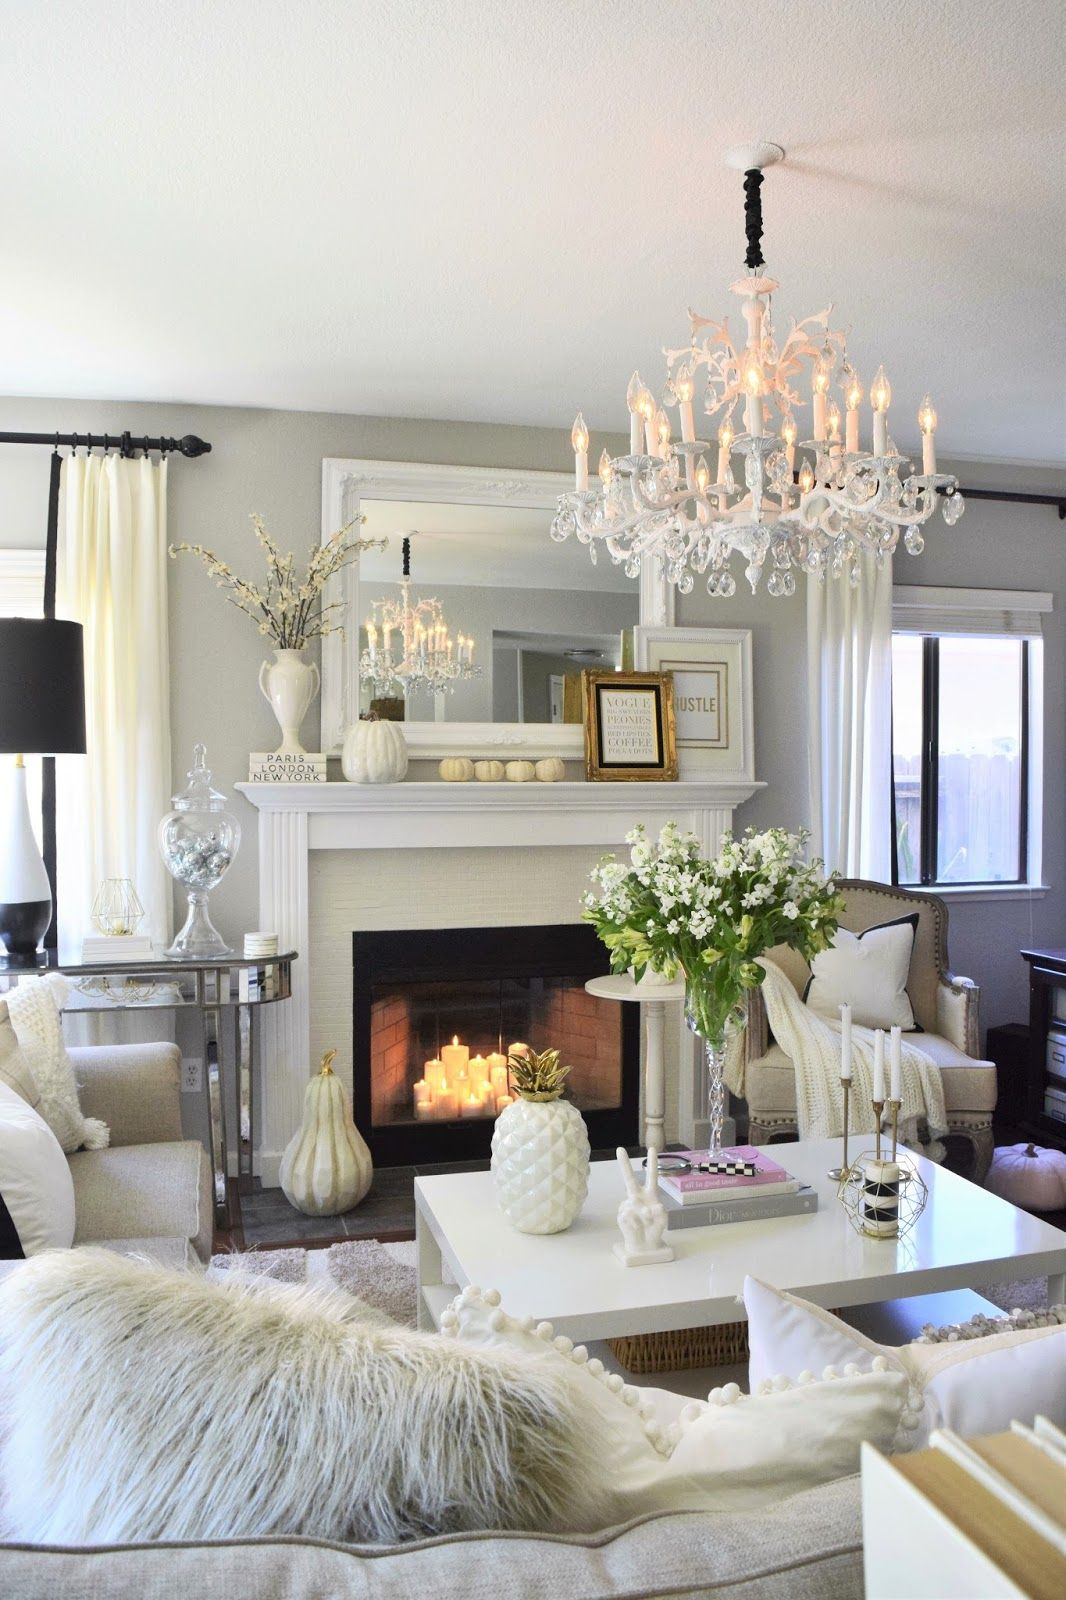 Living Room Design Contemporary: The Case For Decorating With Neutrals